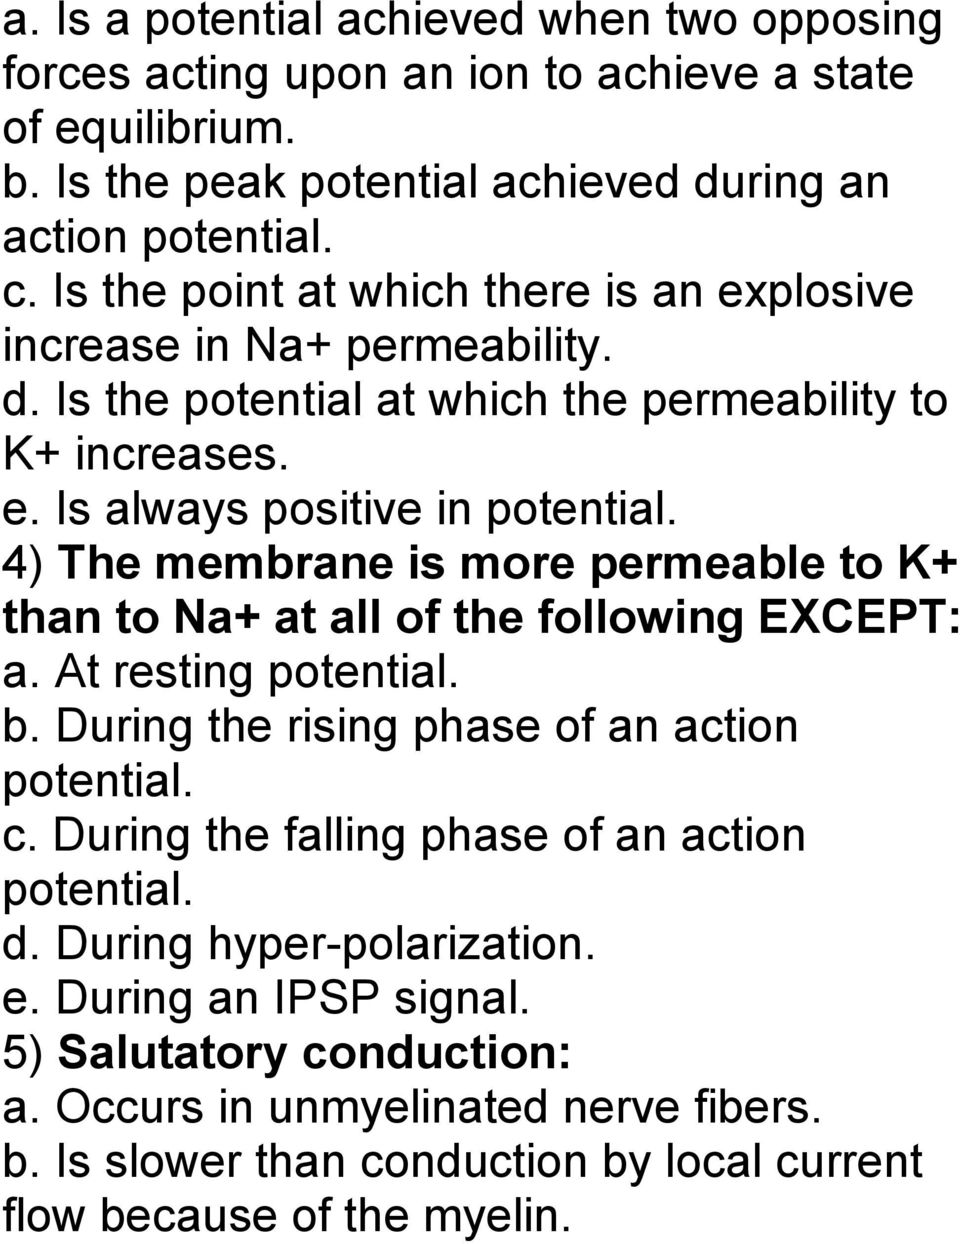 4) The membrane is more permeable to K+ than to Na+ at all of the following EXCEPT: a. At resting potential. b. During the rising phase of an action potential. c.